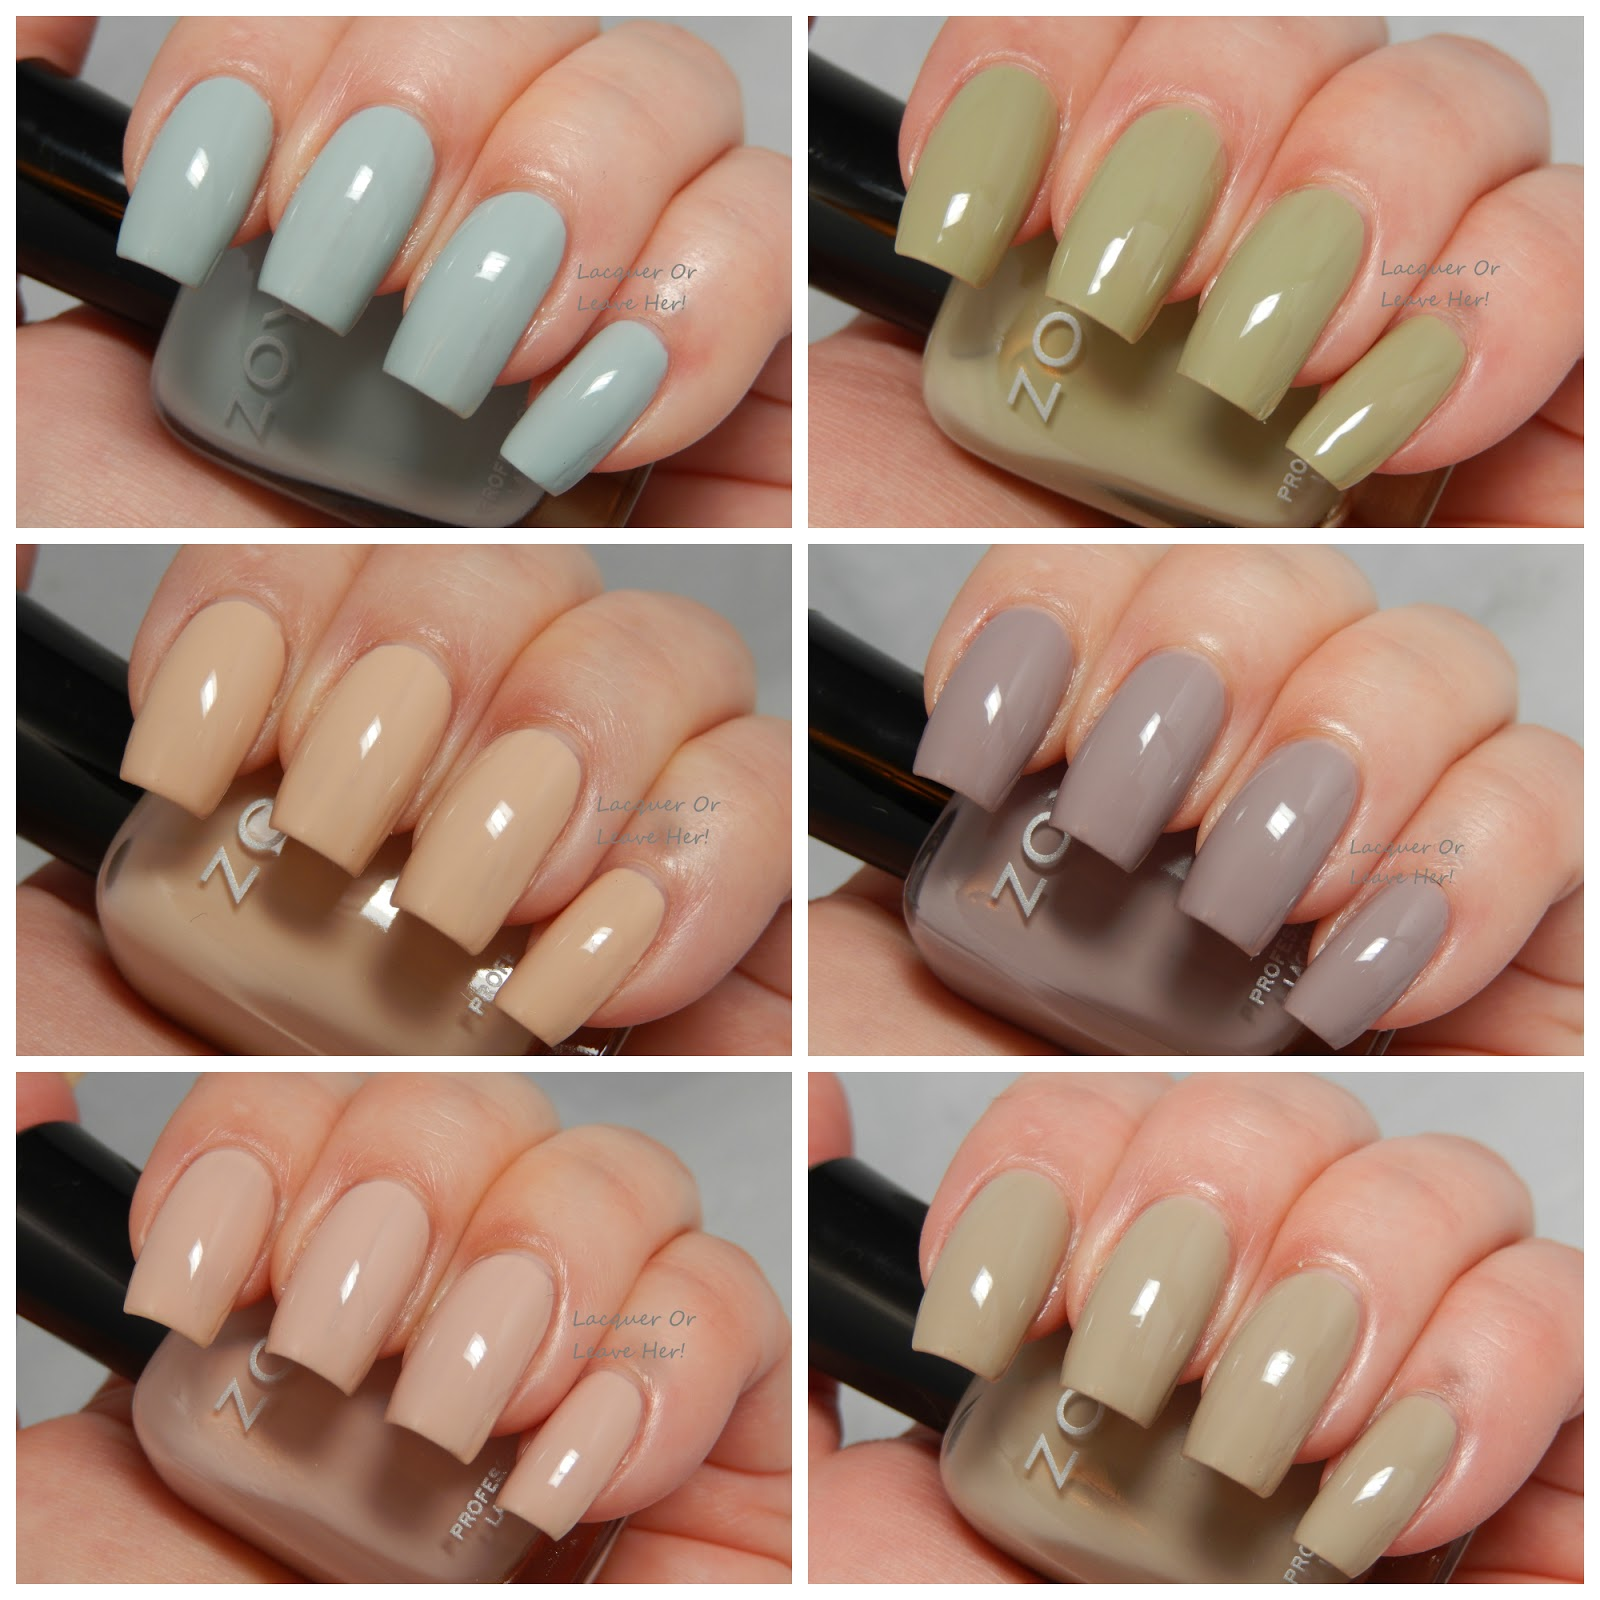 Lacquer Or Leave Her Review Zoyas Whisper Collection Spring 2016